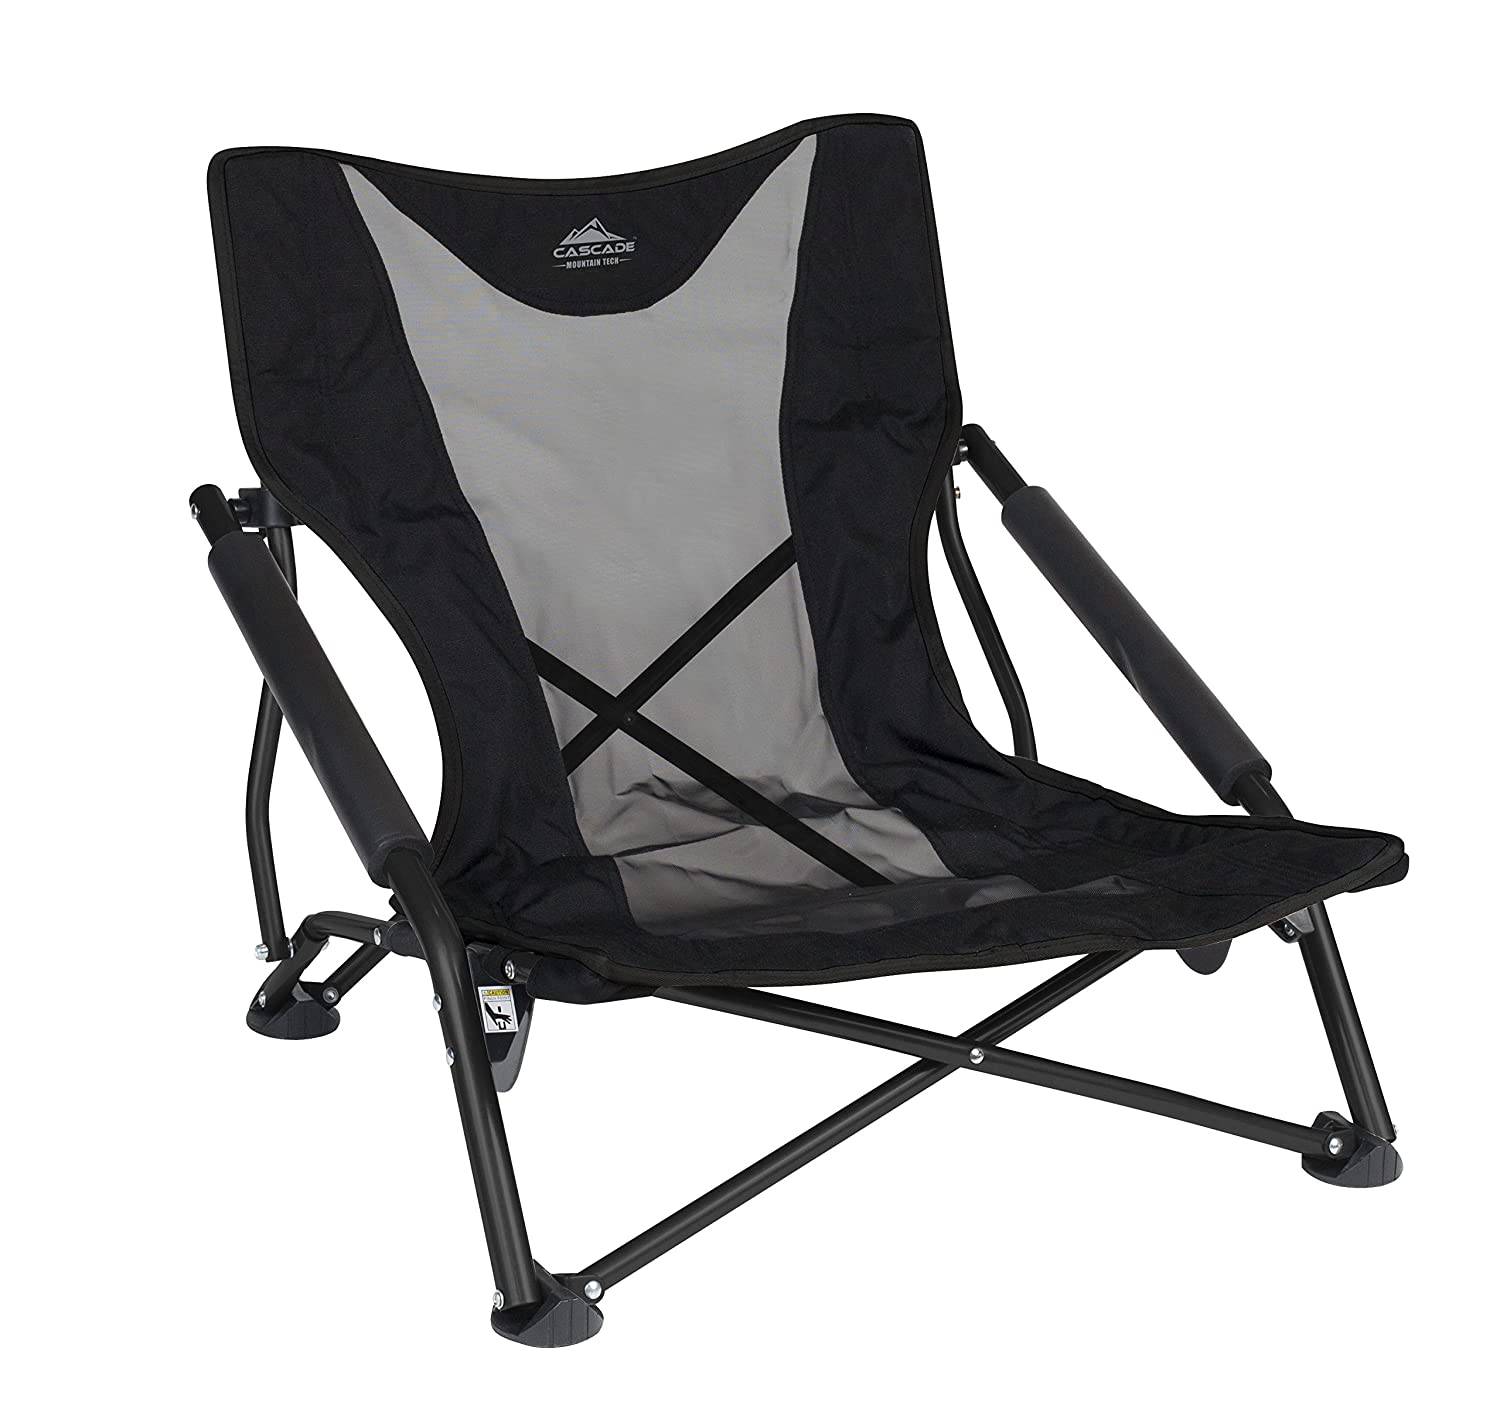 Astonishing Cascade Mountain Tech Compact Low Profile Outdoor Folding Camp Chair With Carry Case Gmtry Best Dining Table And Chair Ideas Images Gmtryco